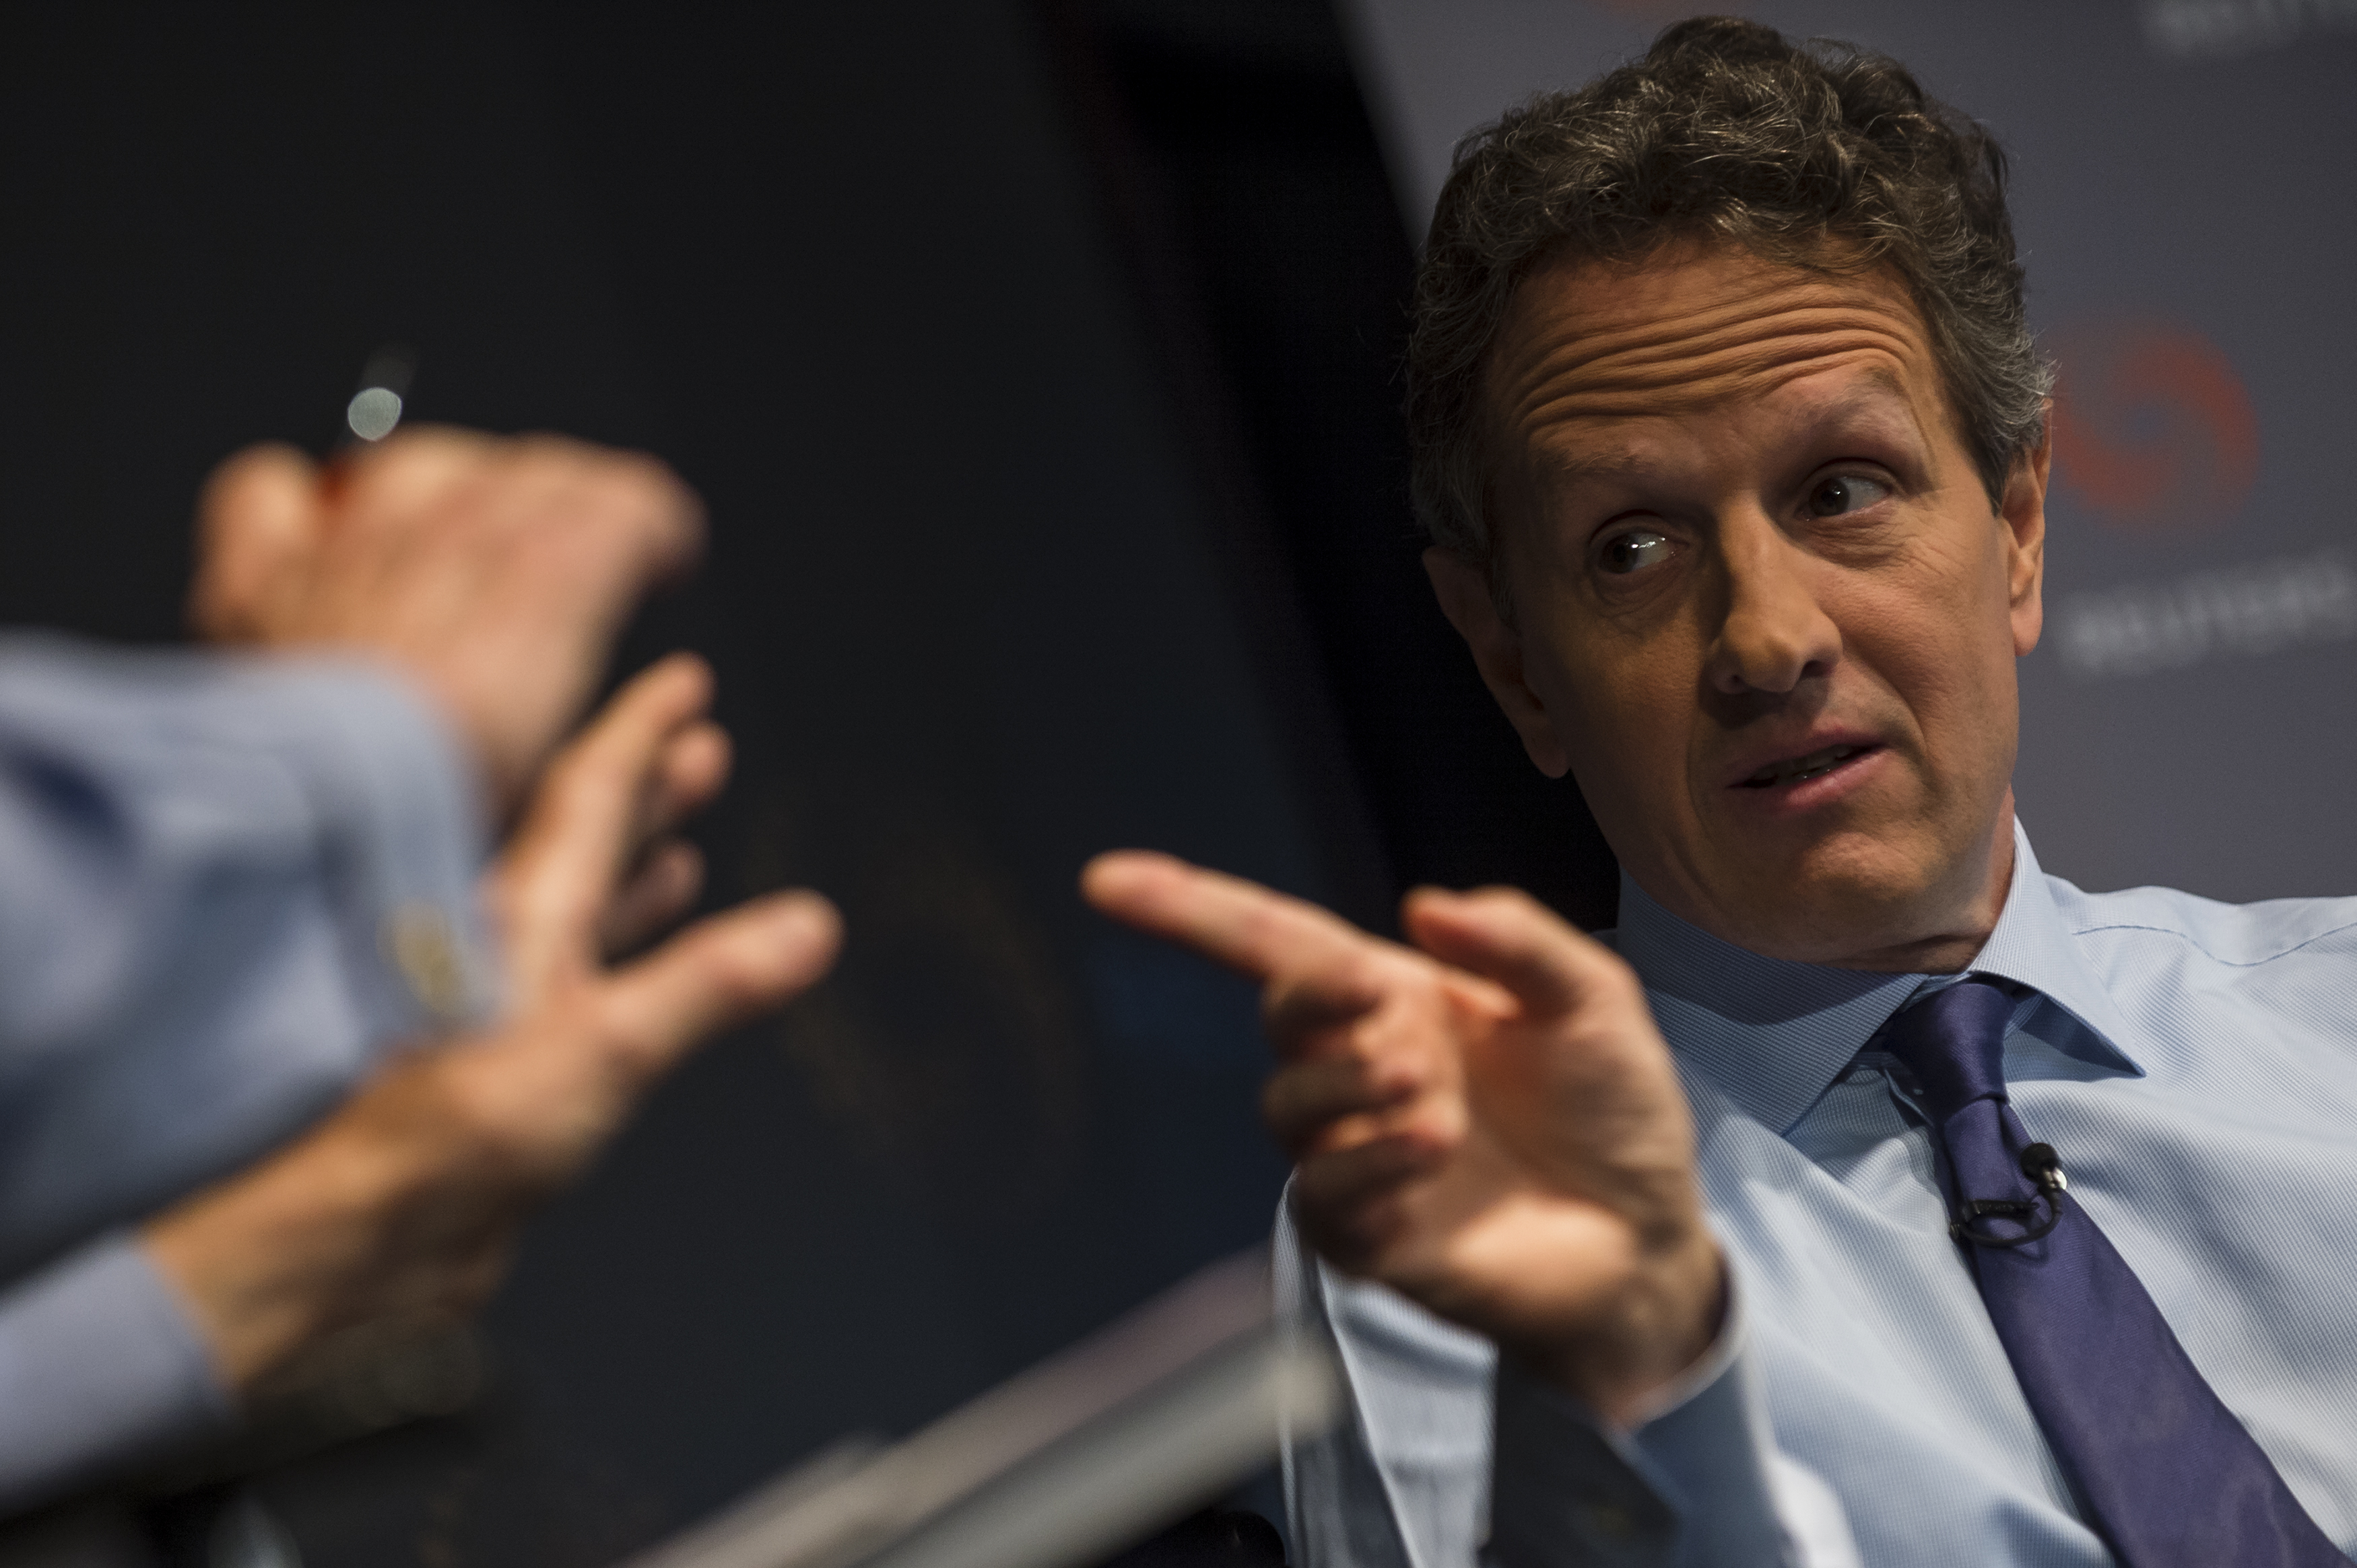 Geithner speaks during an event in New York